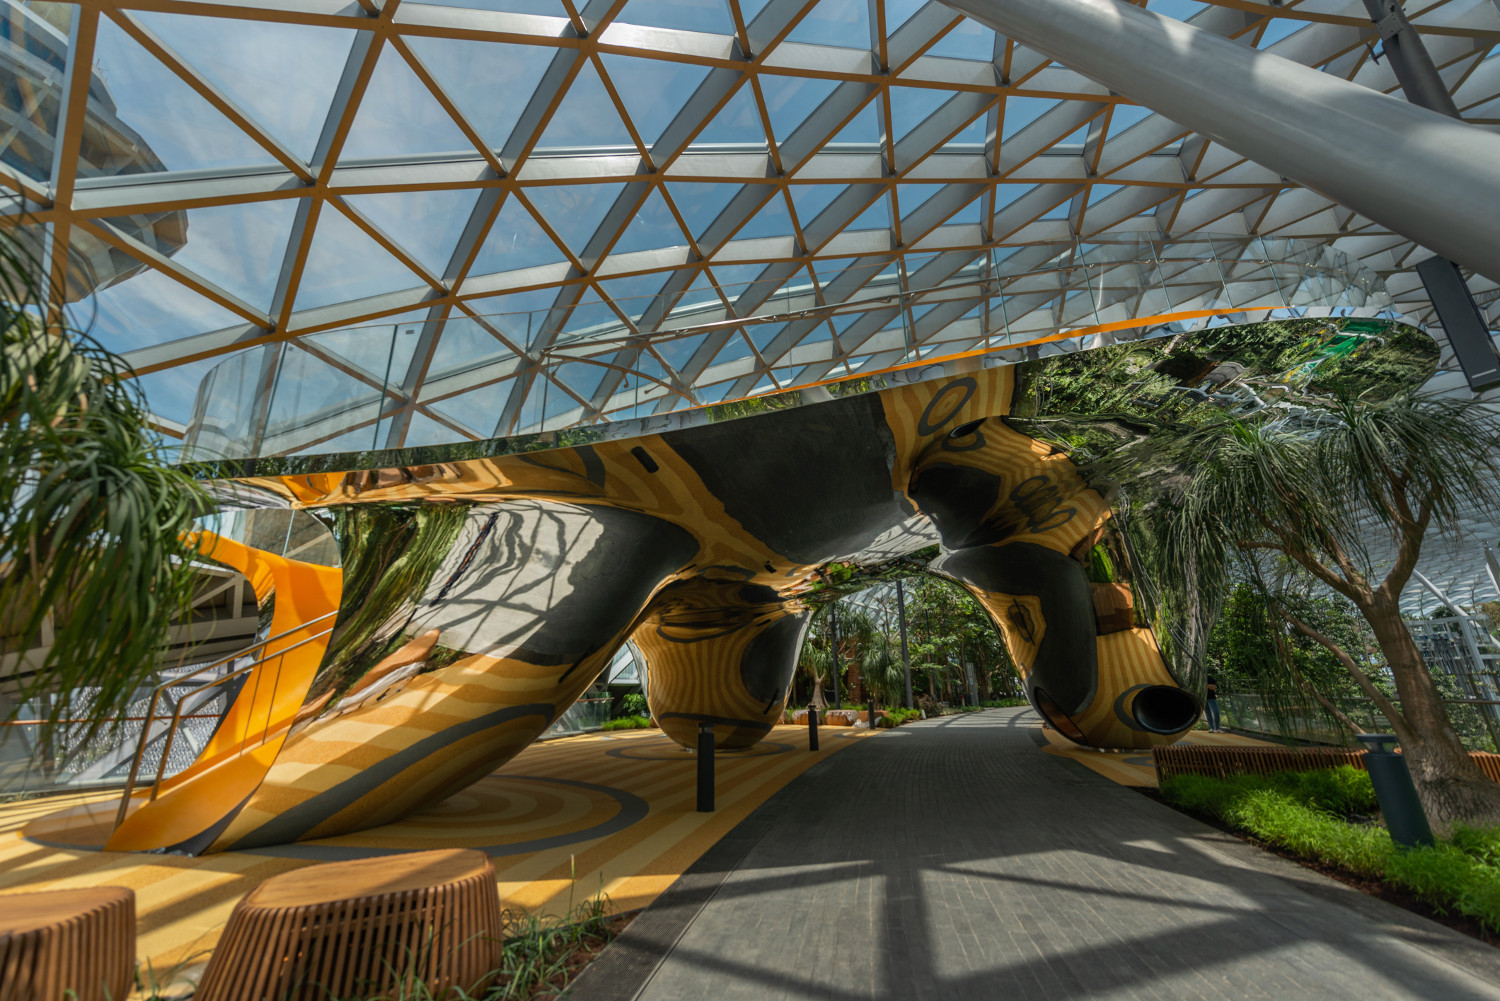 The Discovery Slides are set within a reflective sculpted art installation.